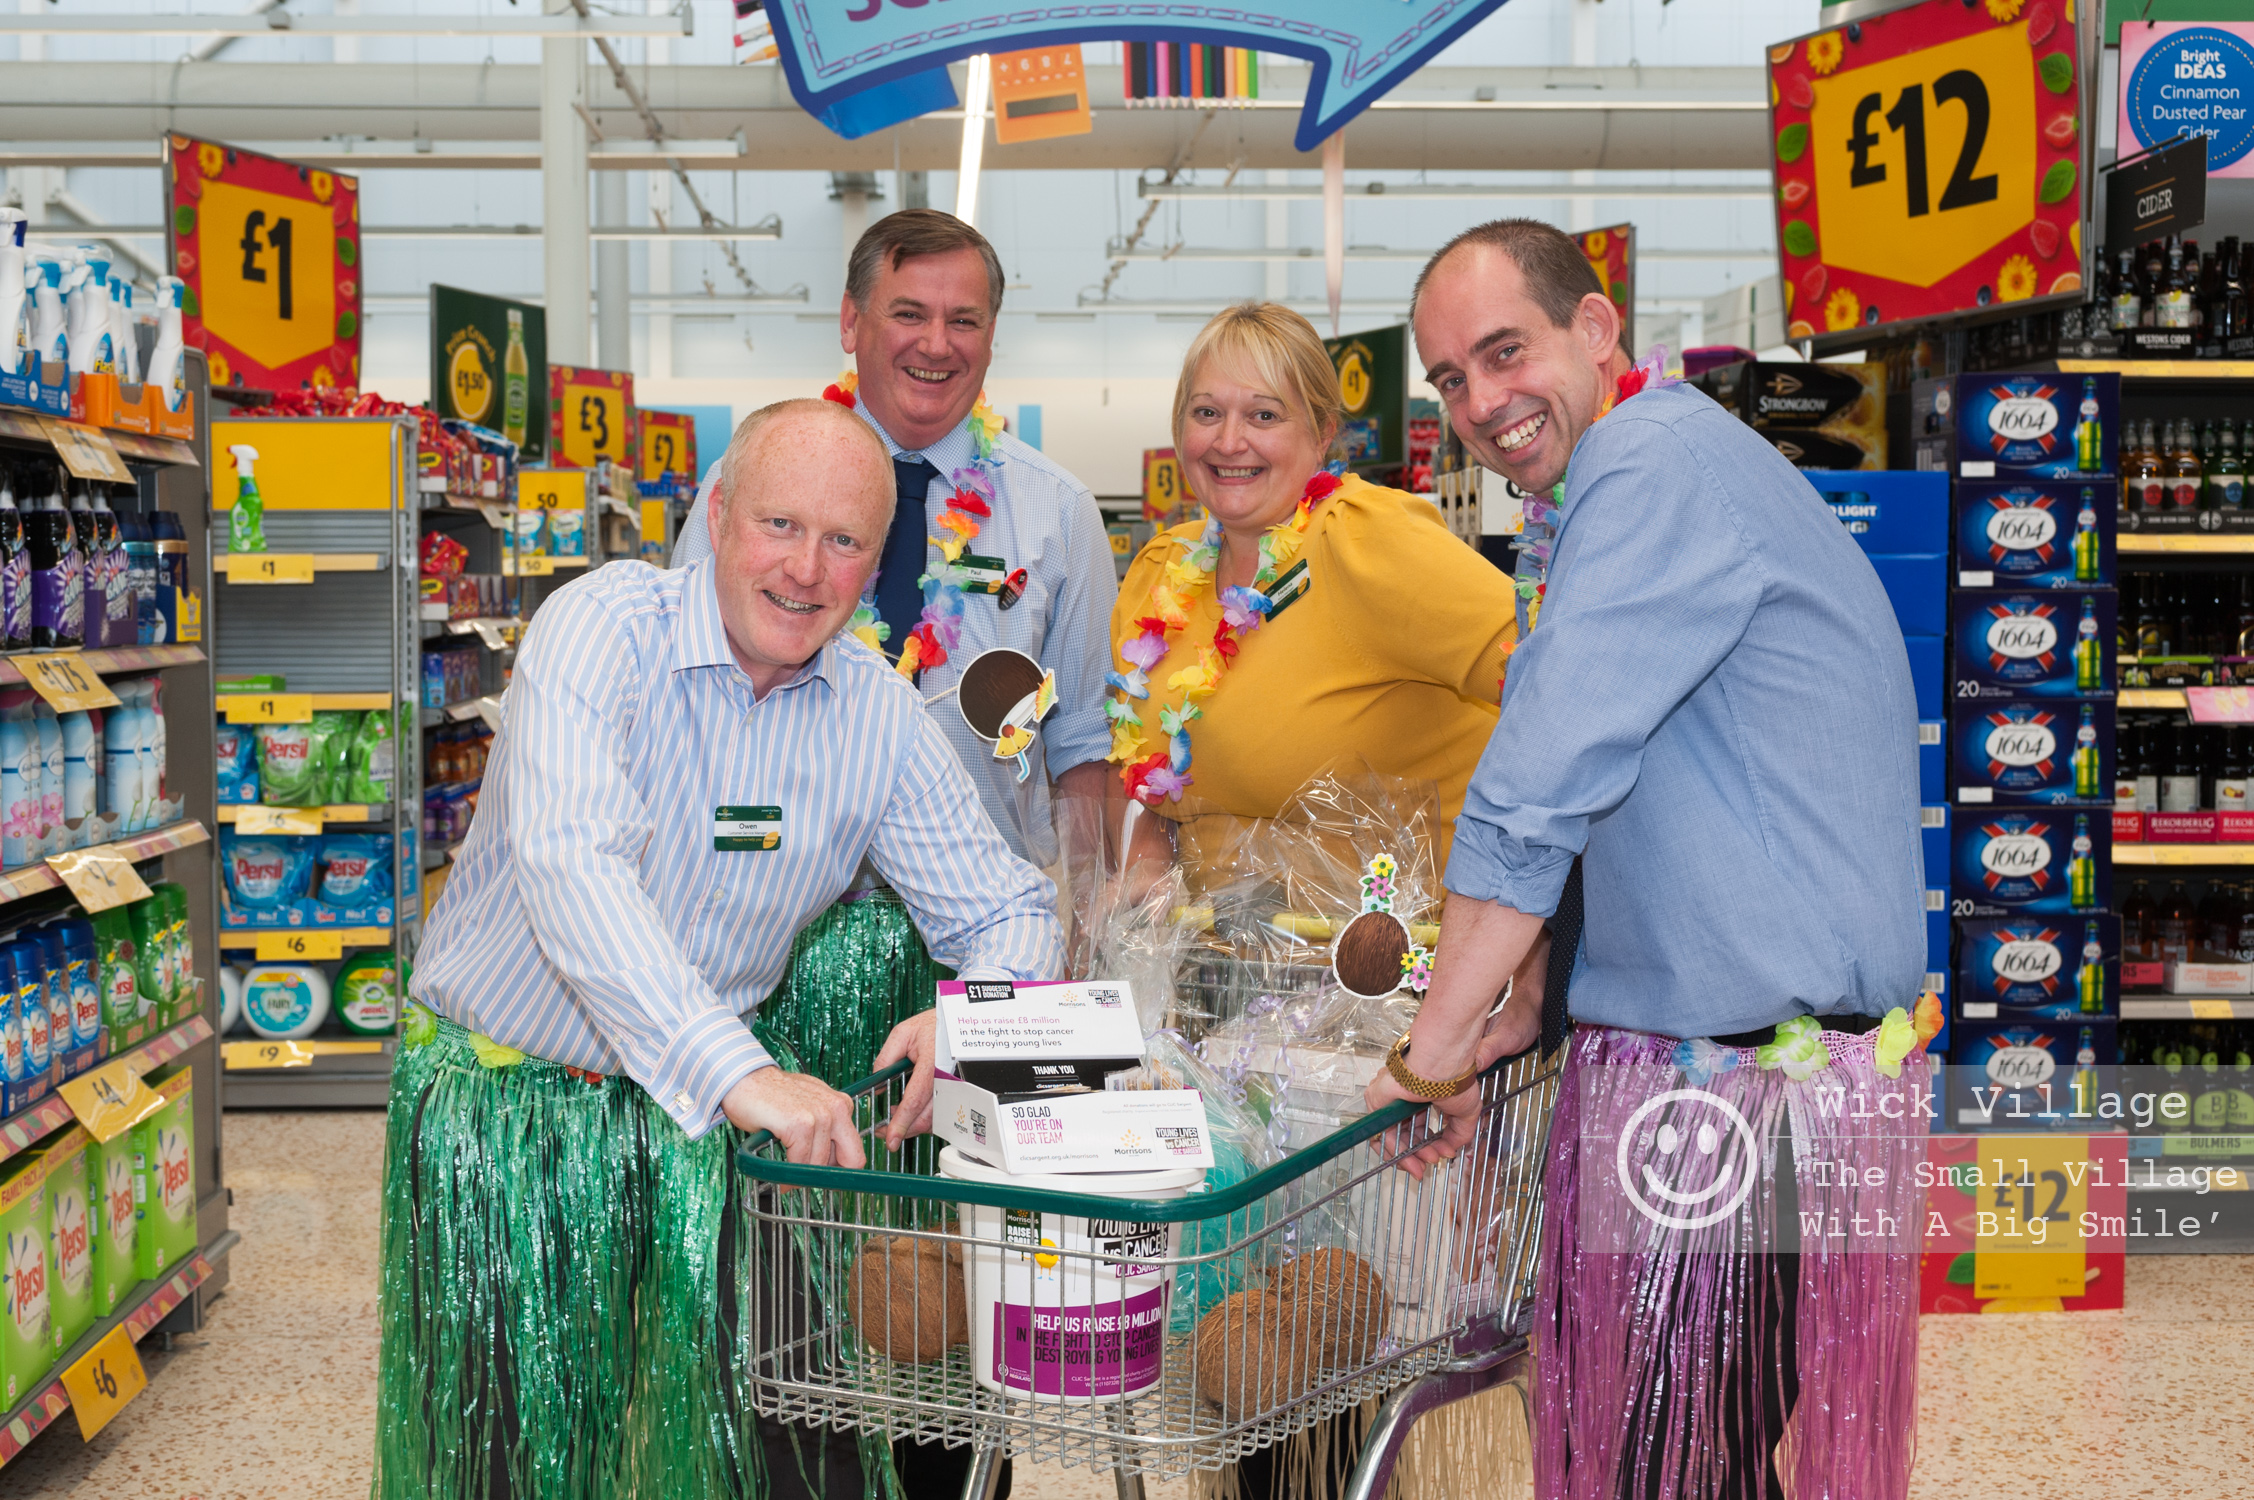 Morrisons Store Charity Event In Wick Village